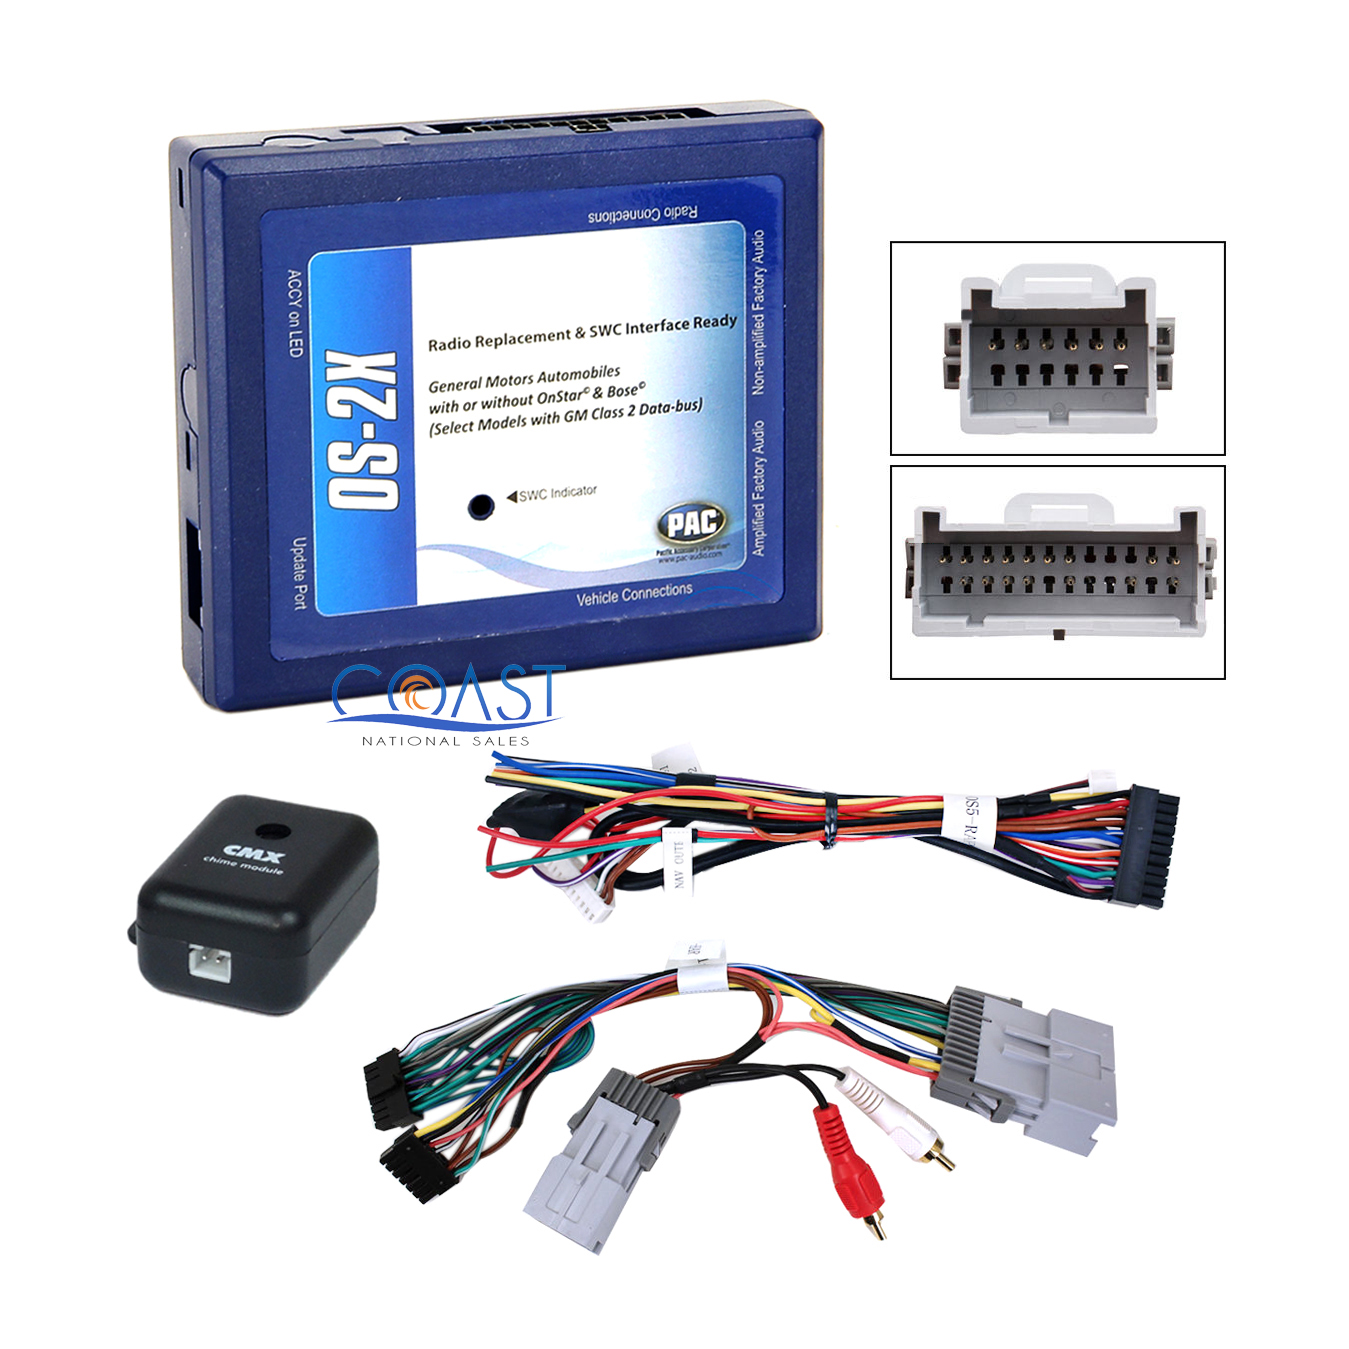 hight resolution of car radio bose onstar interface wiring harness for 2000 up gm chevy onstar stereo 24 pin diagram